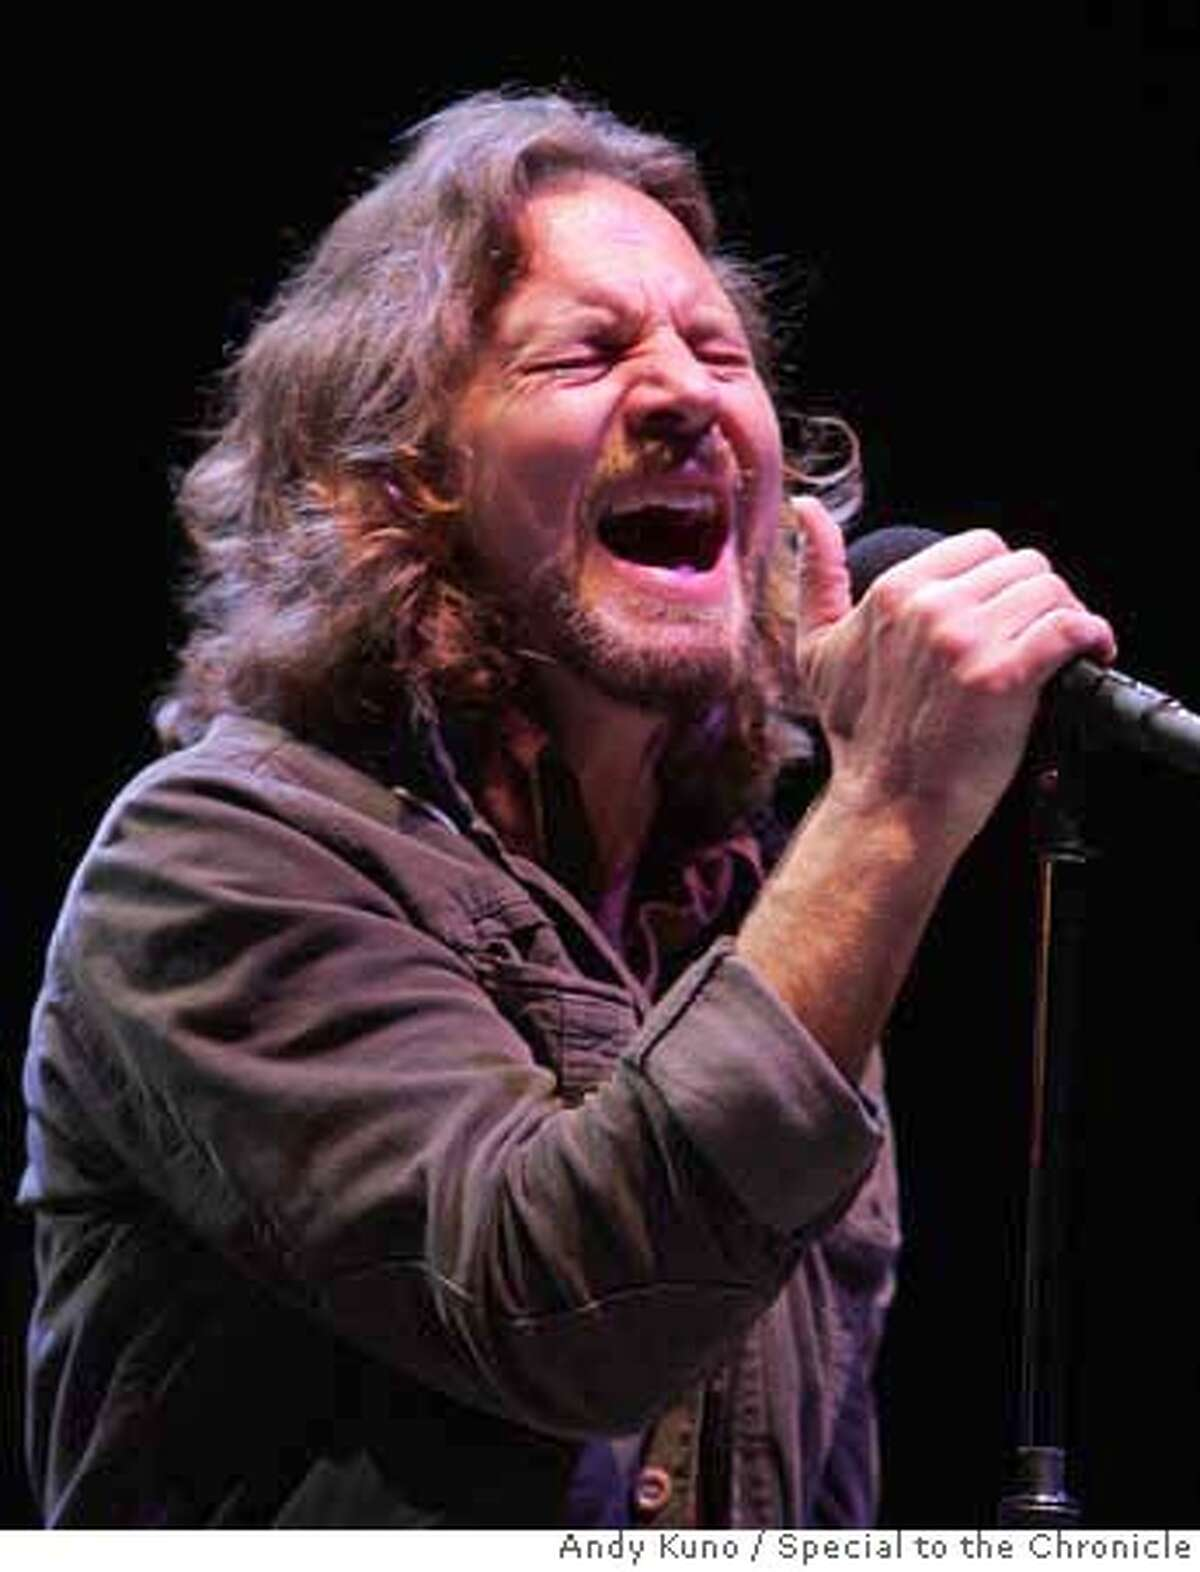 Pearl Jam's Eddie Vedder belts out a note at the Bridge School Benefit Concert at the Shoreline Amphitheatre in Mountain View, Calif. Saturday October 21, 2006. By ANDY KUNO/SPECIAL TO THE CHRONICLE